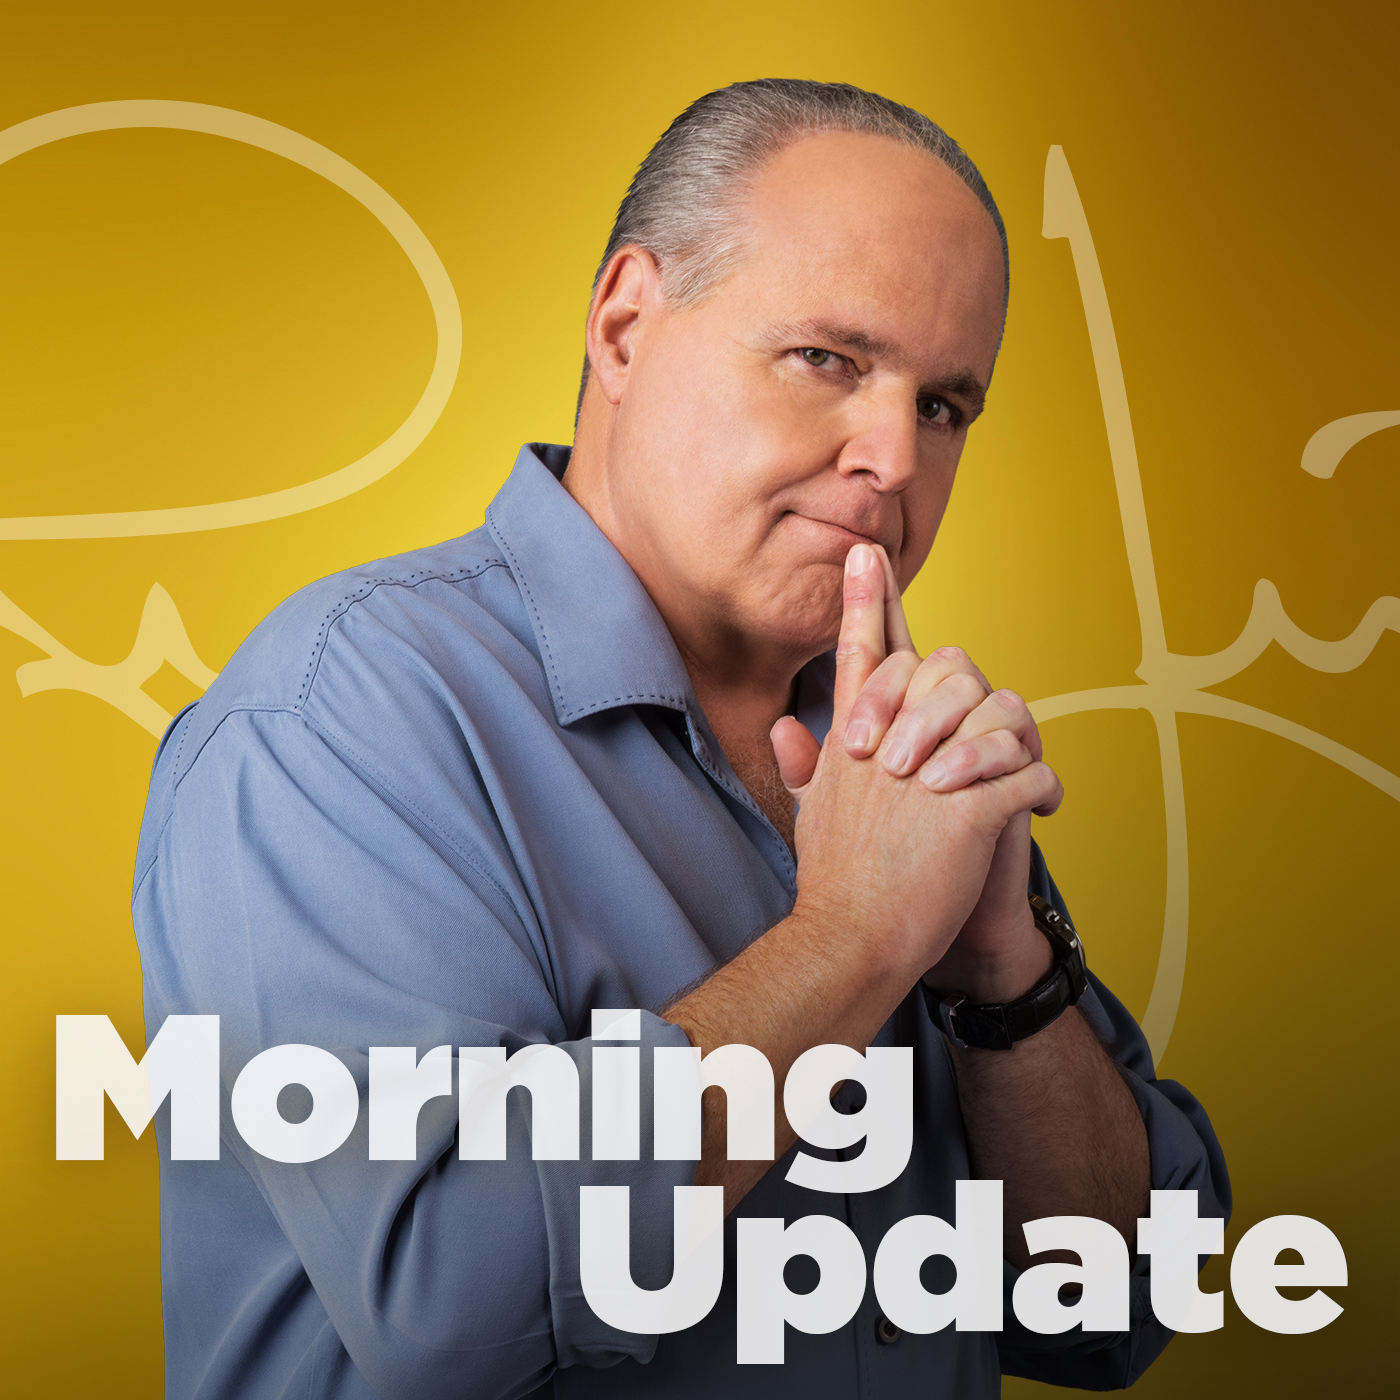 Rush Limbaugh Dec 27, 2019